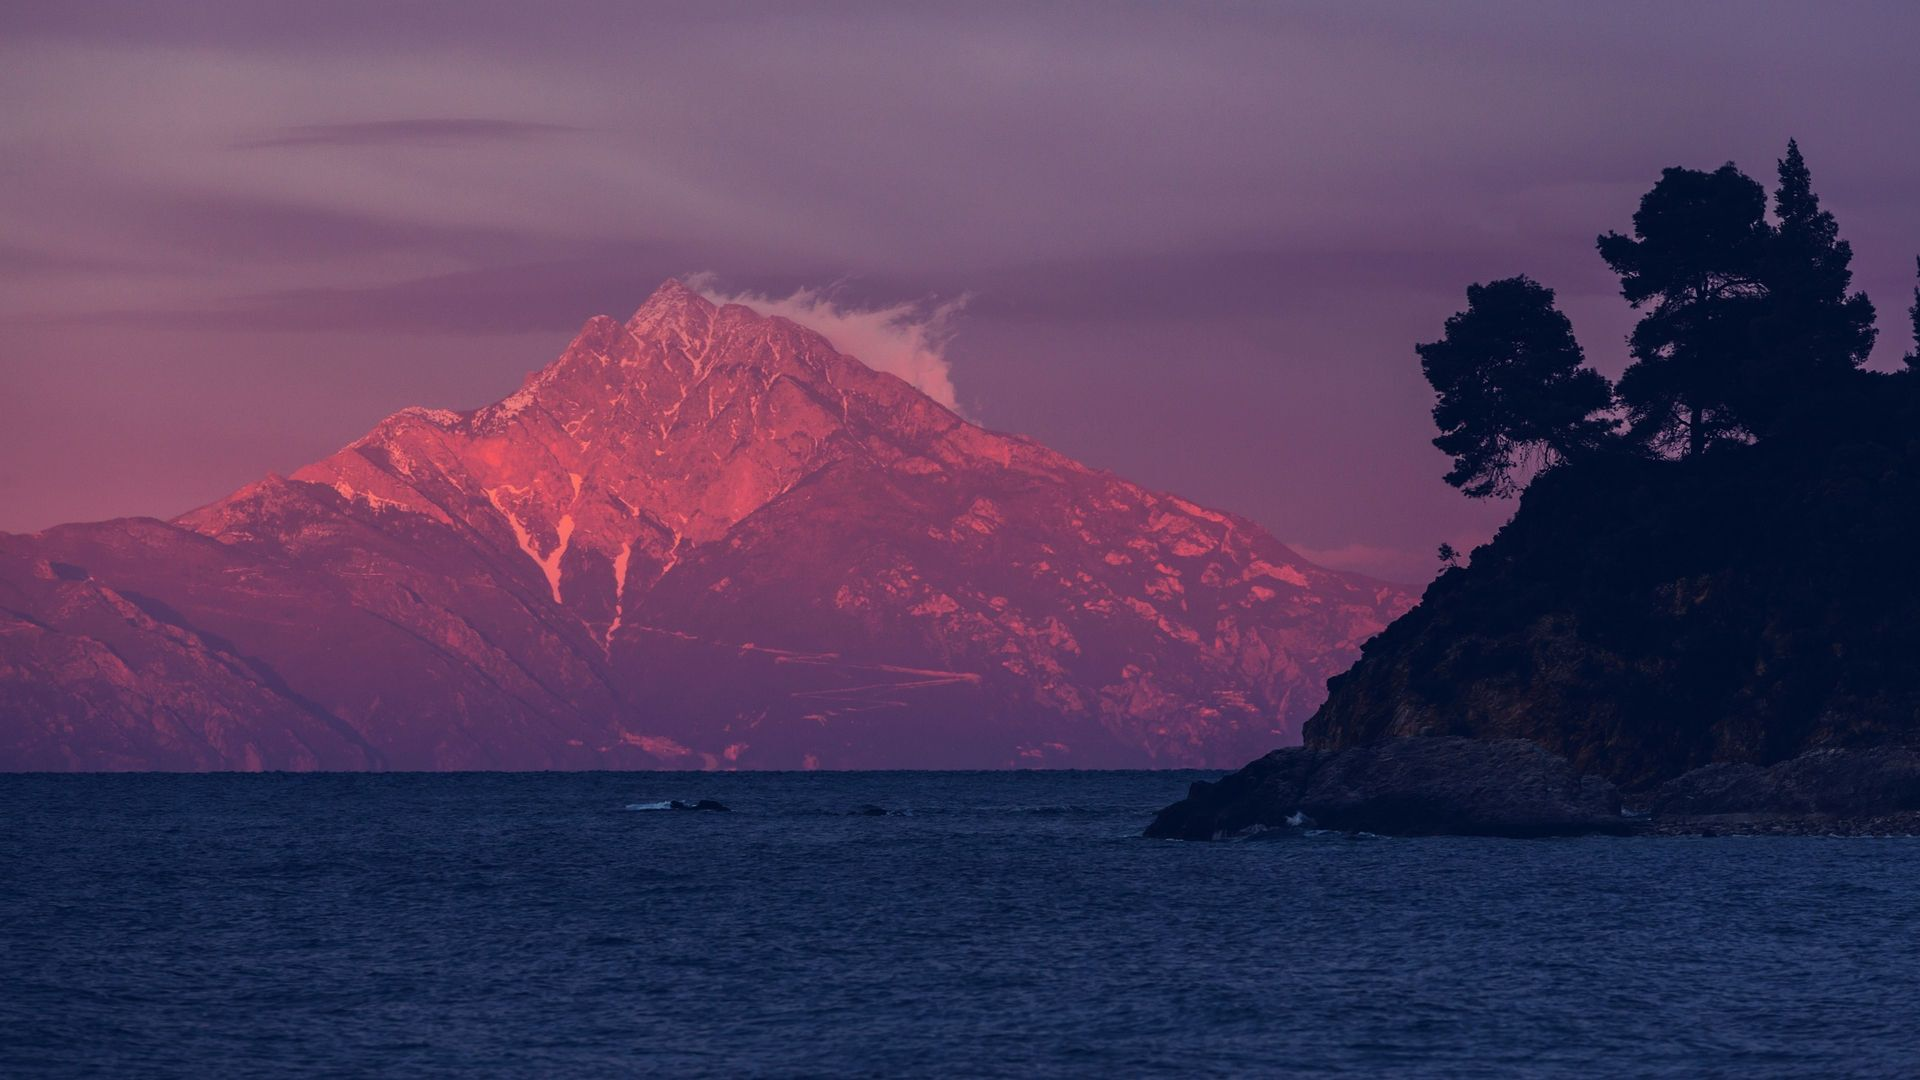 View of the sacred Mount Athos from Halkidiki peninsula